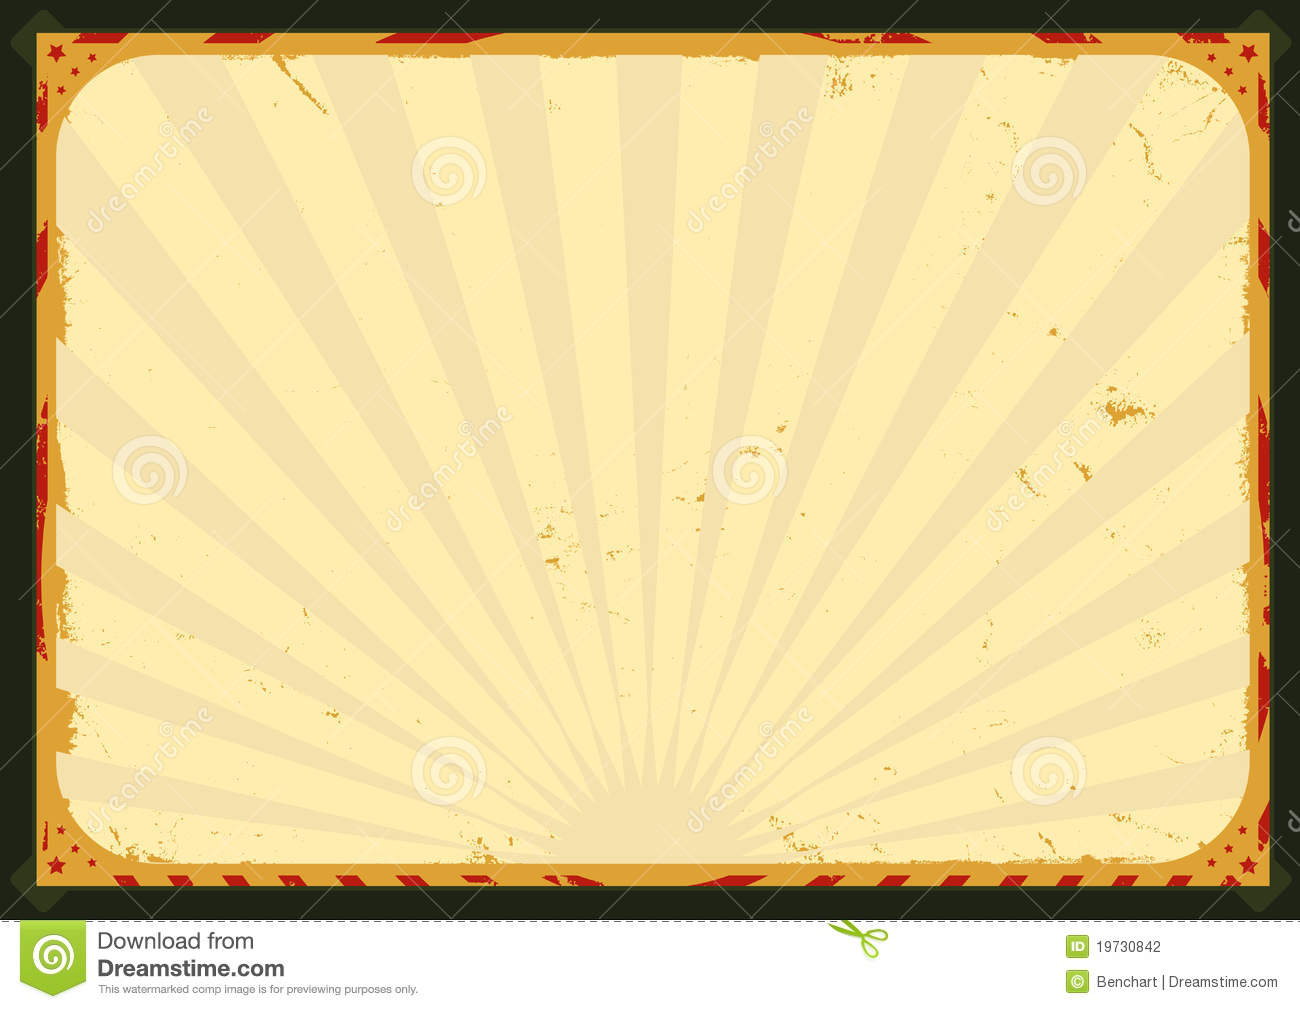 Vintage Poster Background Stock Photography - Image: 19730842